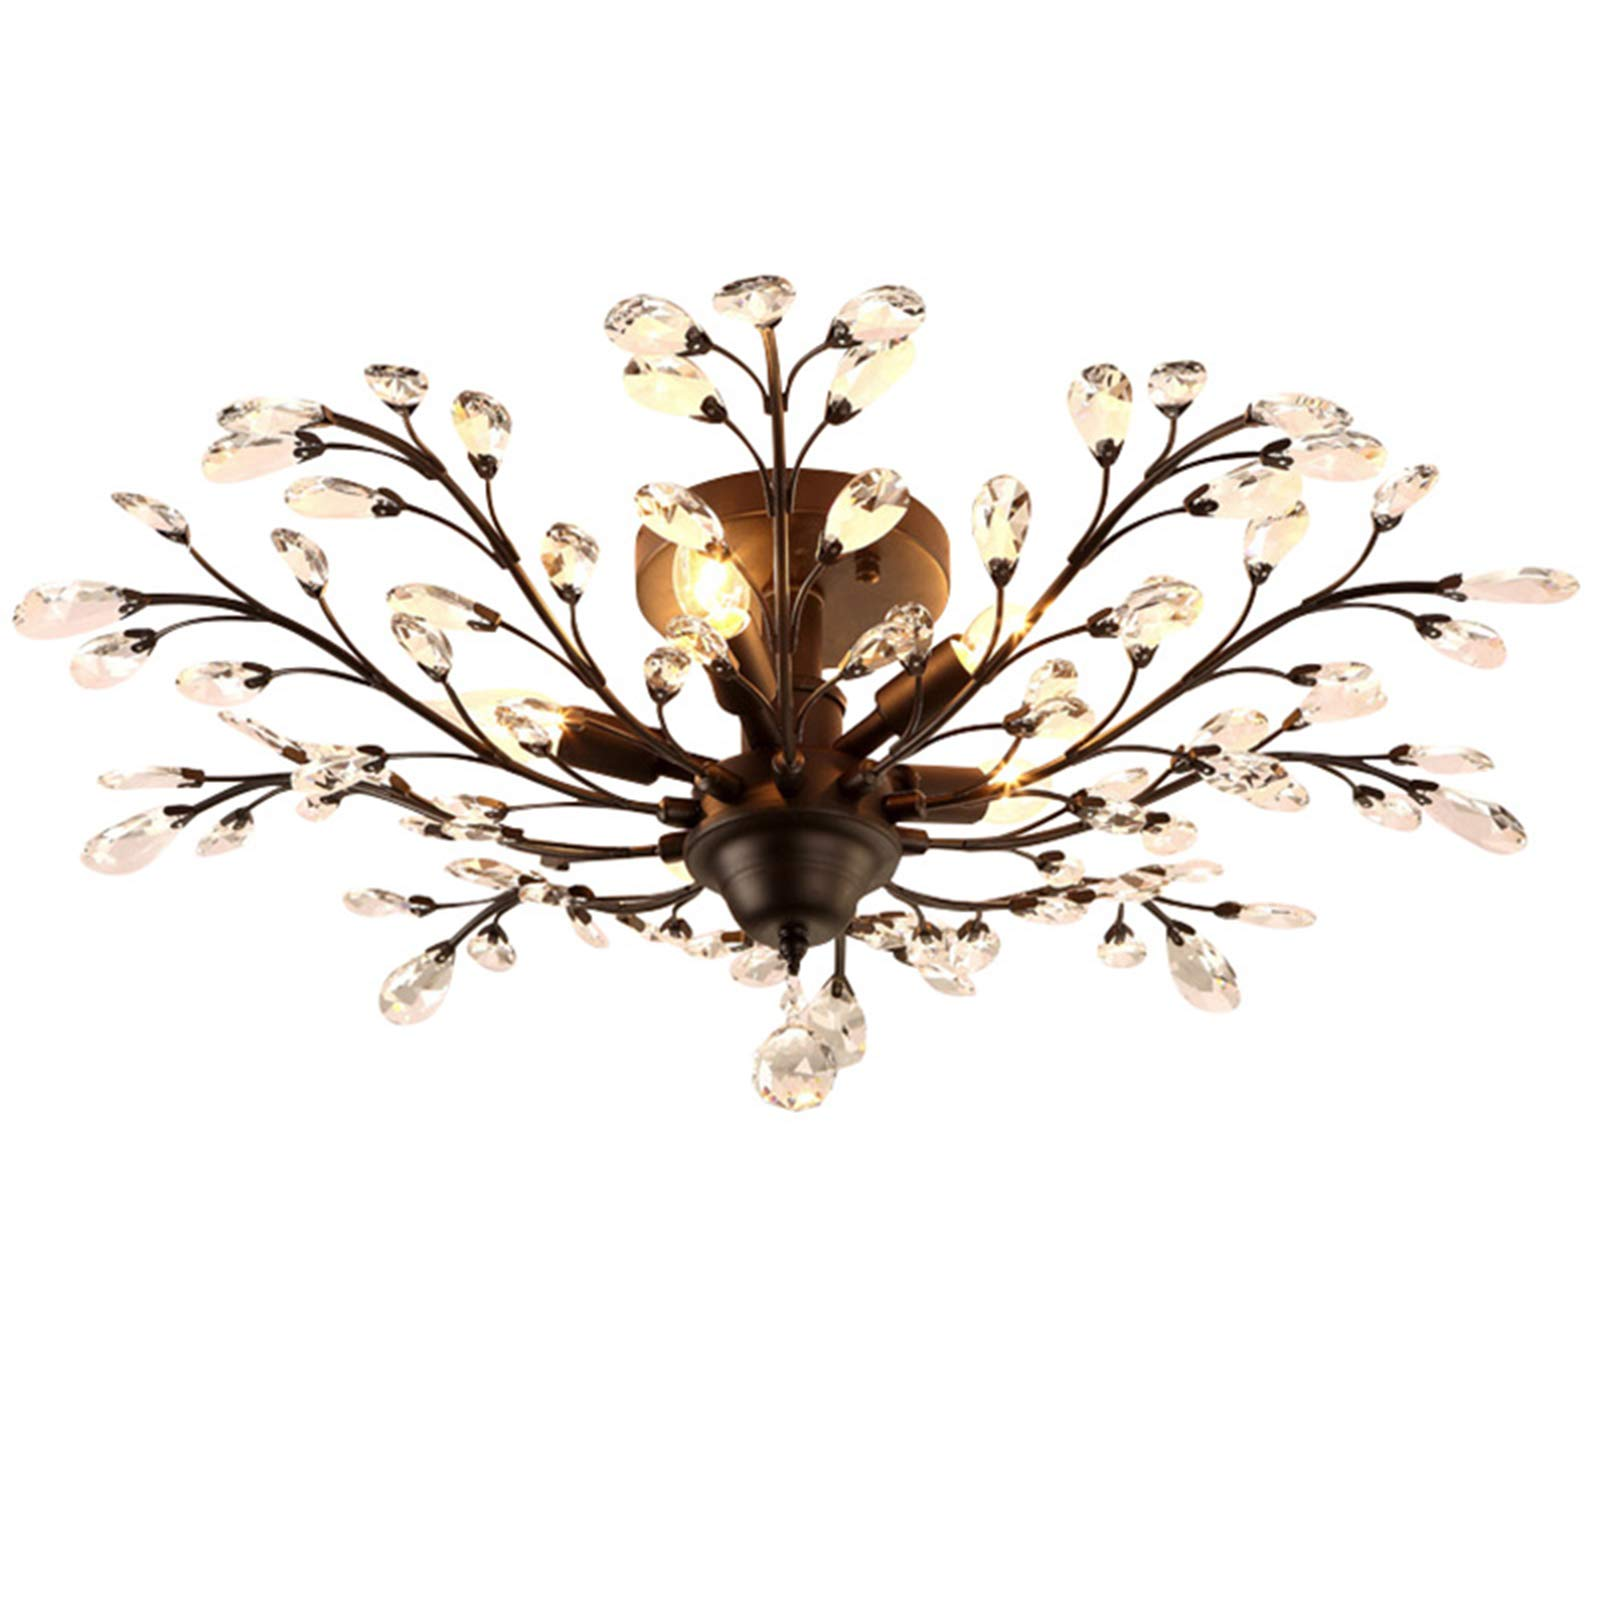 SEOL-LIGHT Vintage Large Crystal Branches Chandeliers Black Ceiling Light Flush Mounted Fixture with 5 Light 200W Large Size by SEOL LIGHT (Image #1)